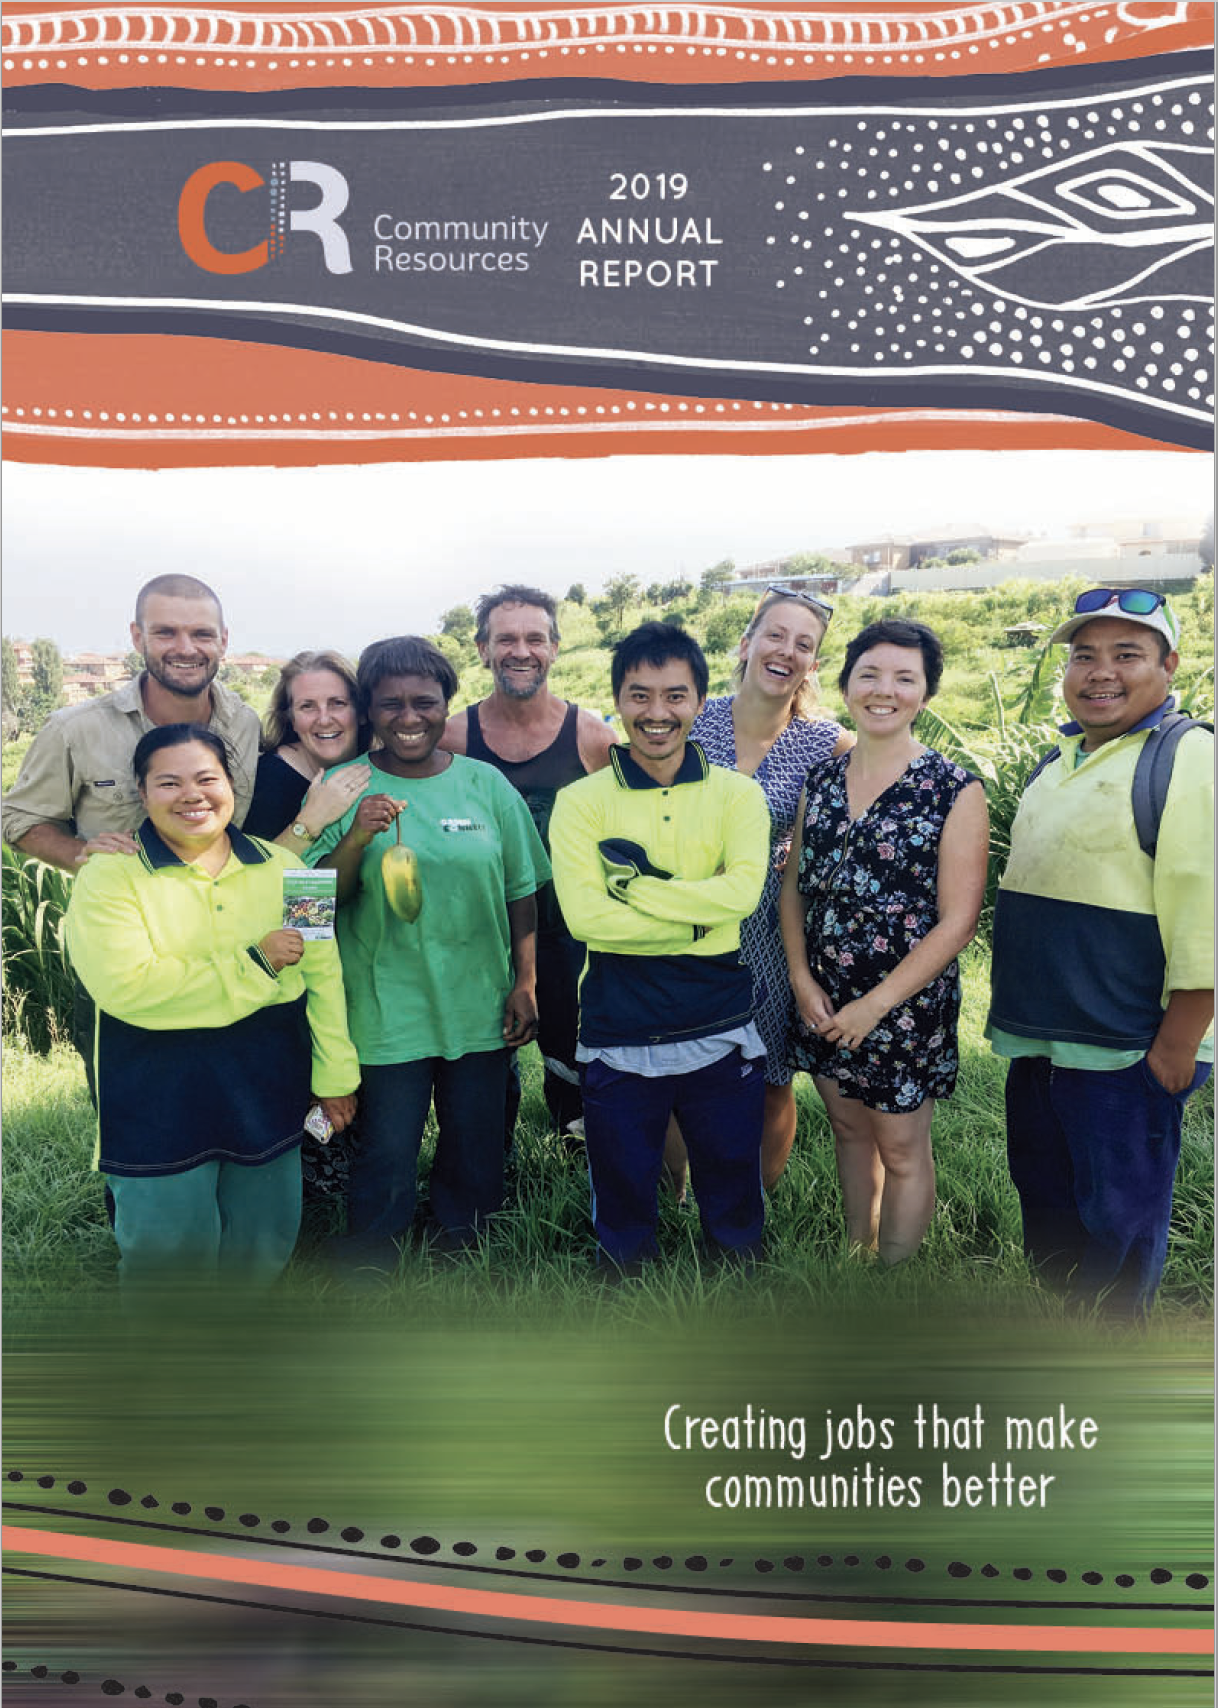 Community-Resources-2019-Annual-Report-cover.jpg